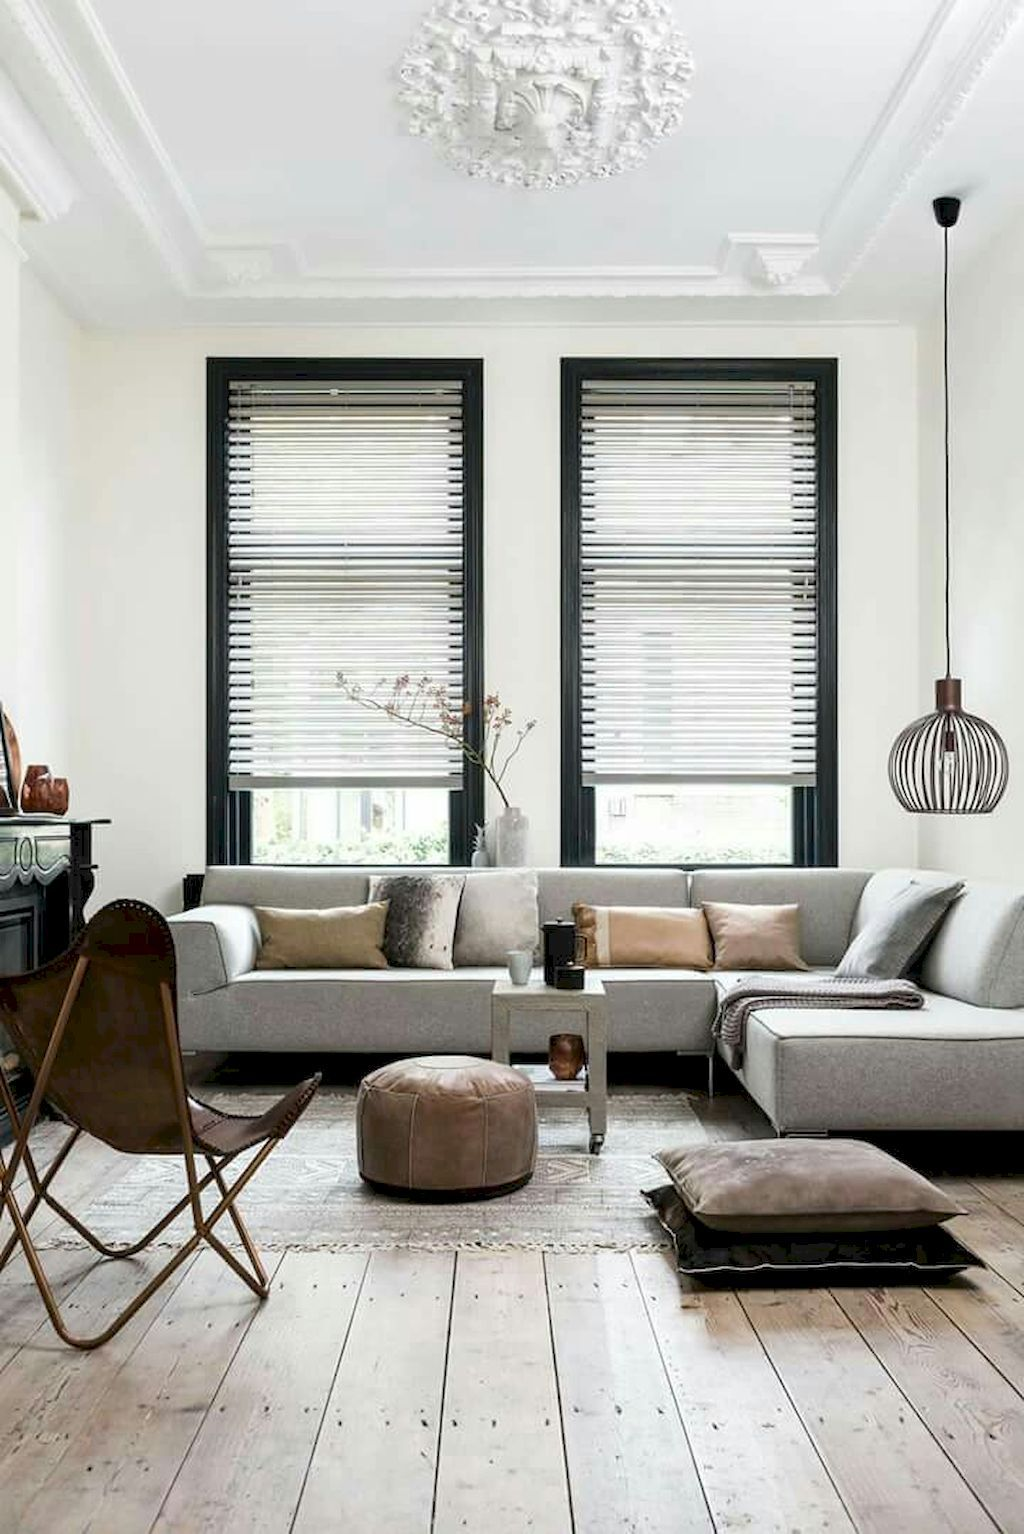 40 beautiful minimalist living room decor ideas | minimalist, room